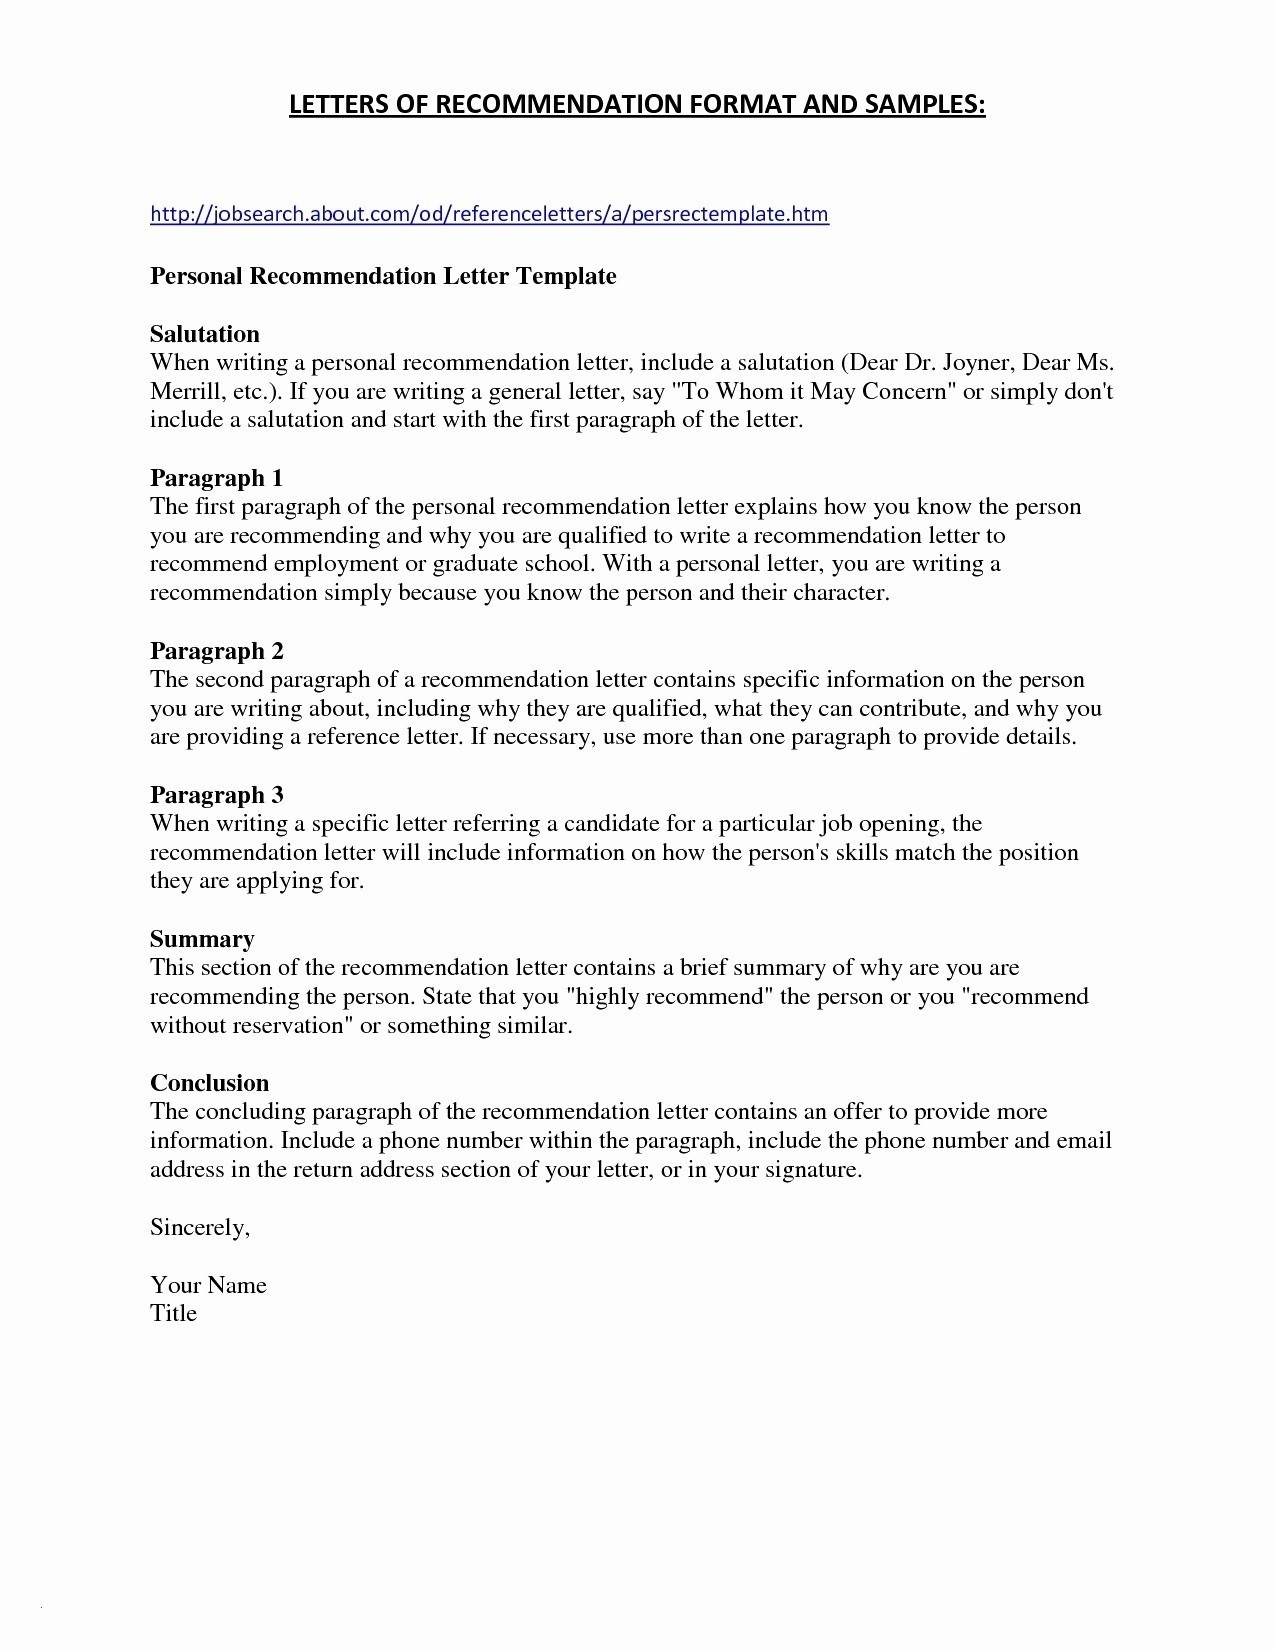 Resumesplanet Reviews - Resumes Planet Review